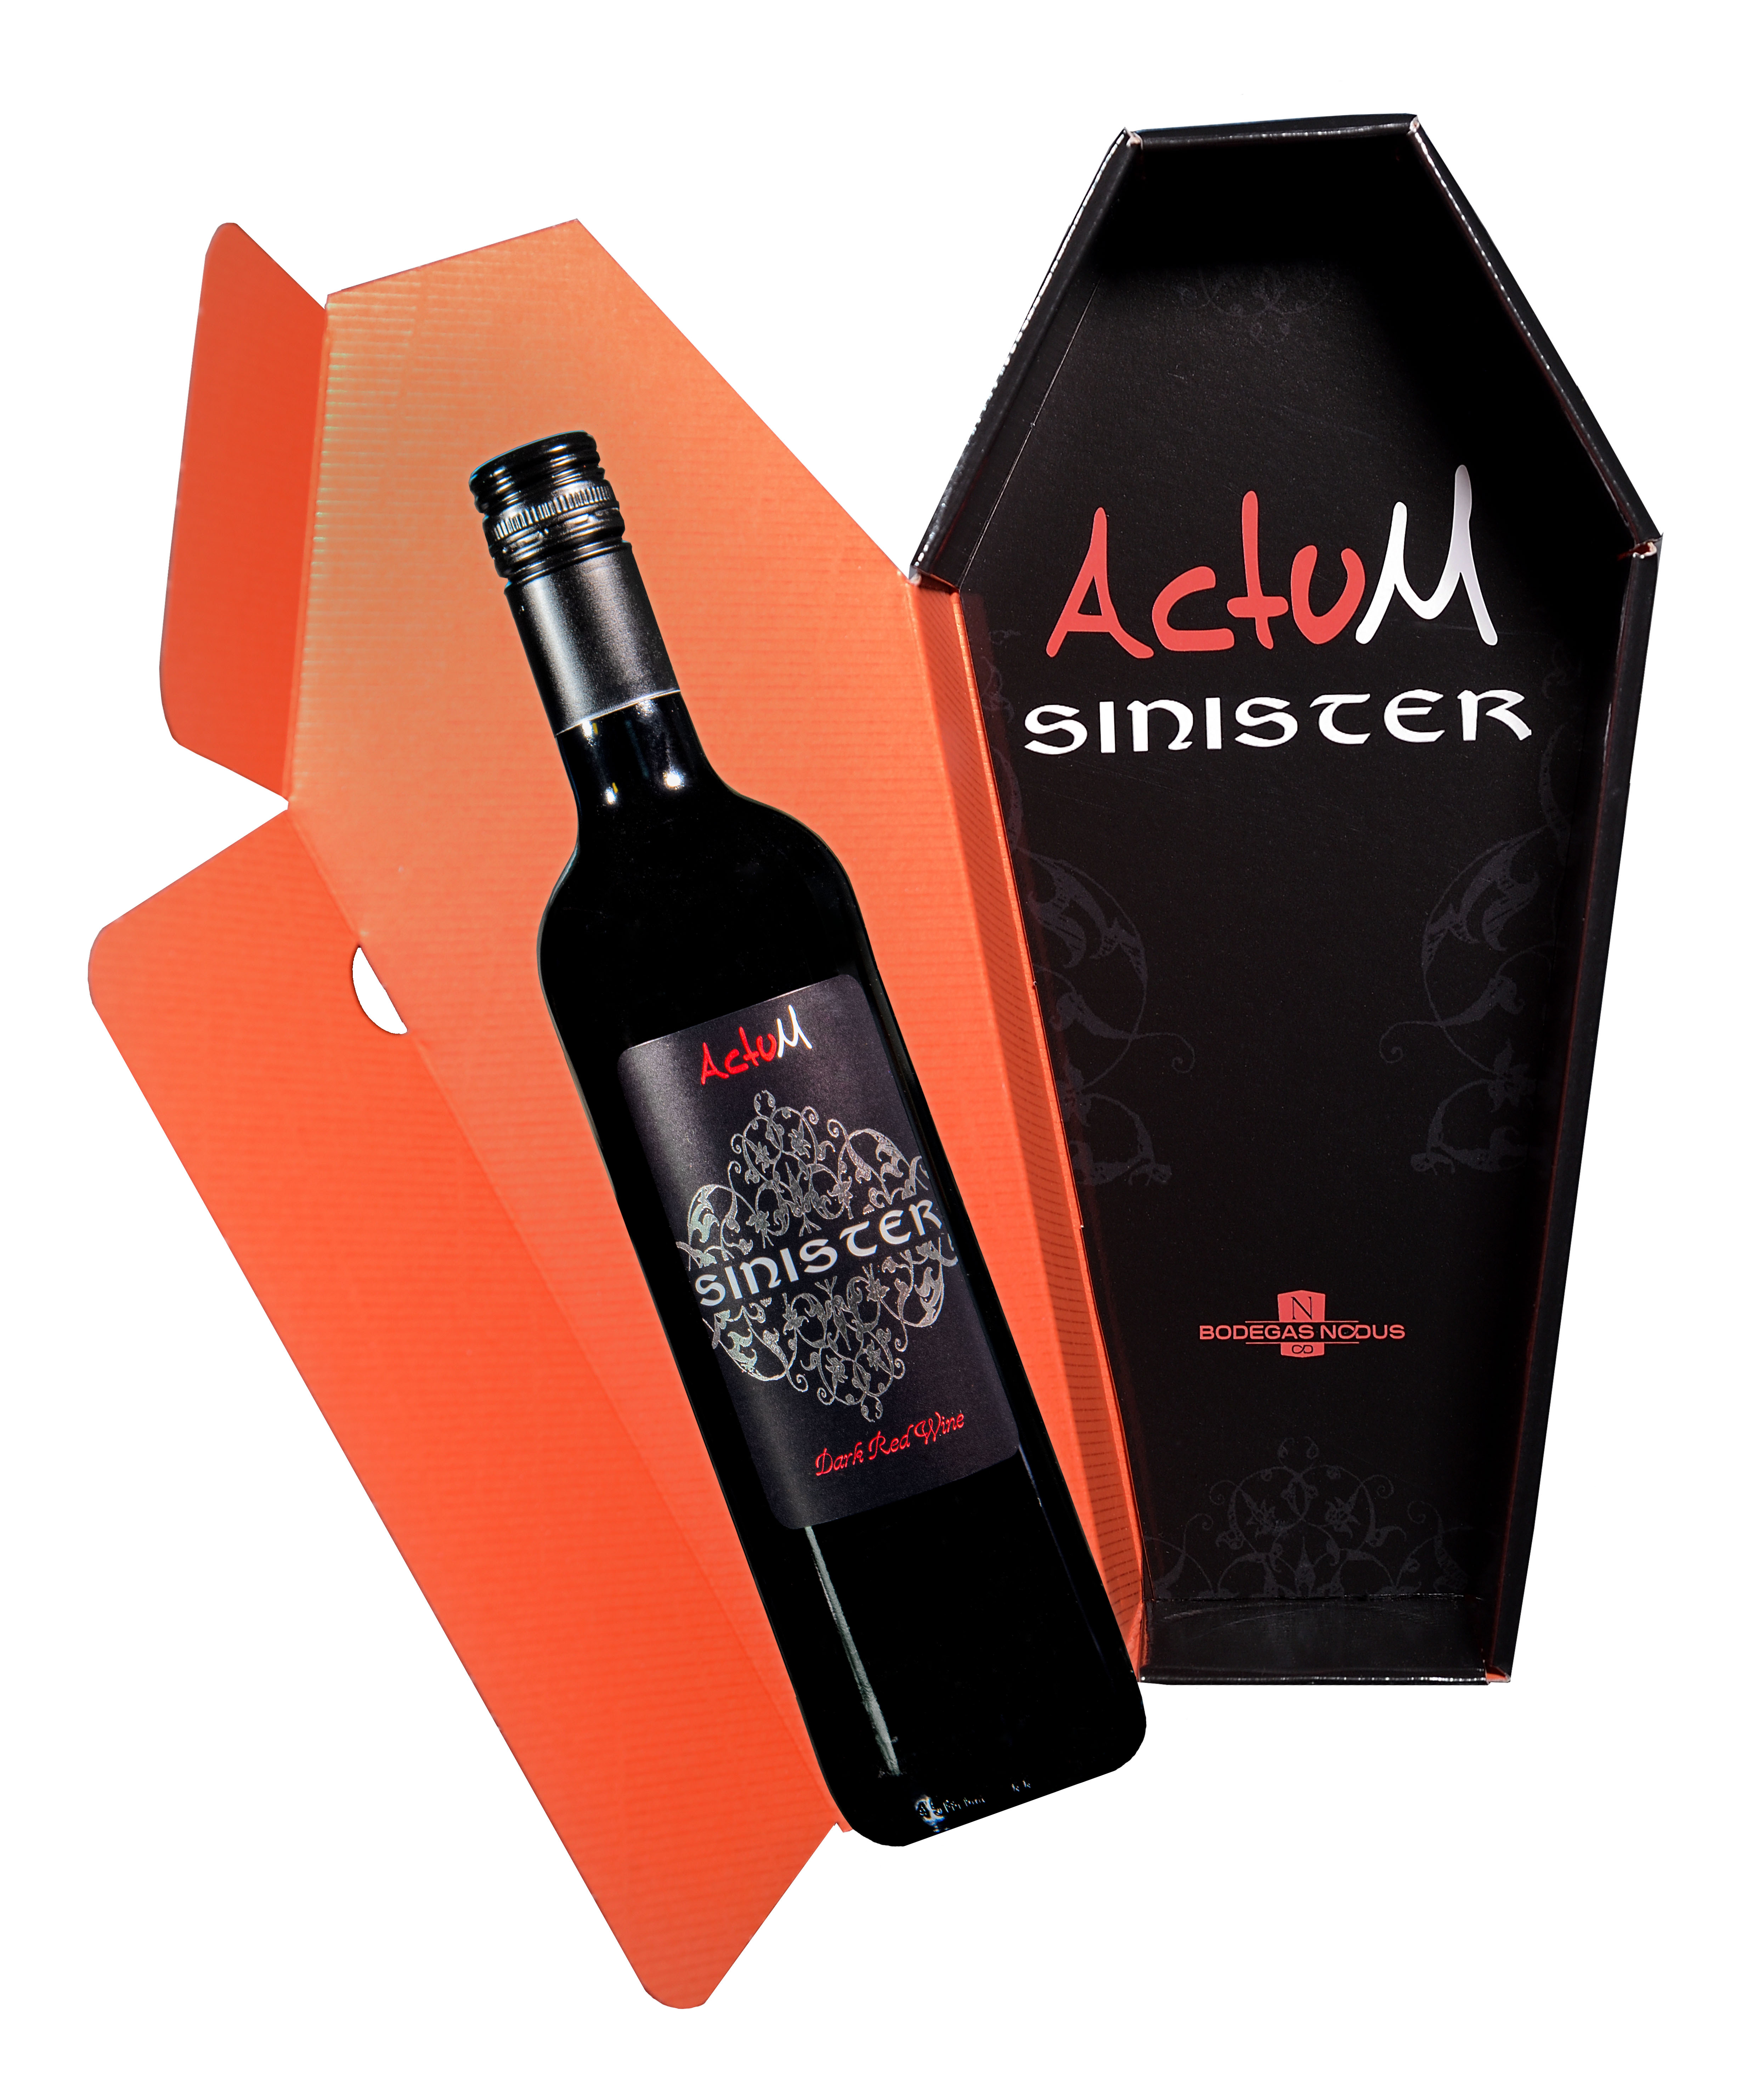 Actum Sinister (Dark Red Wine)